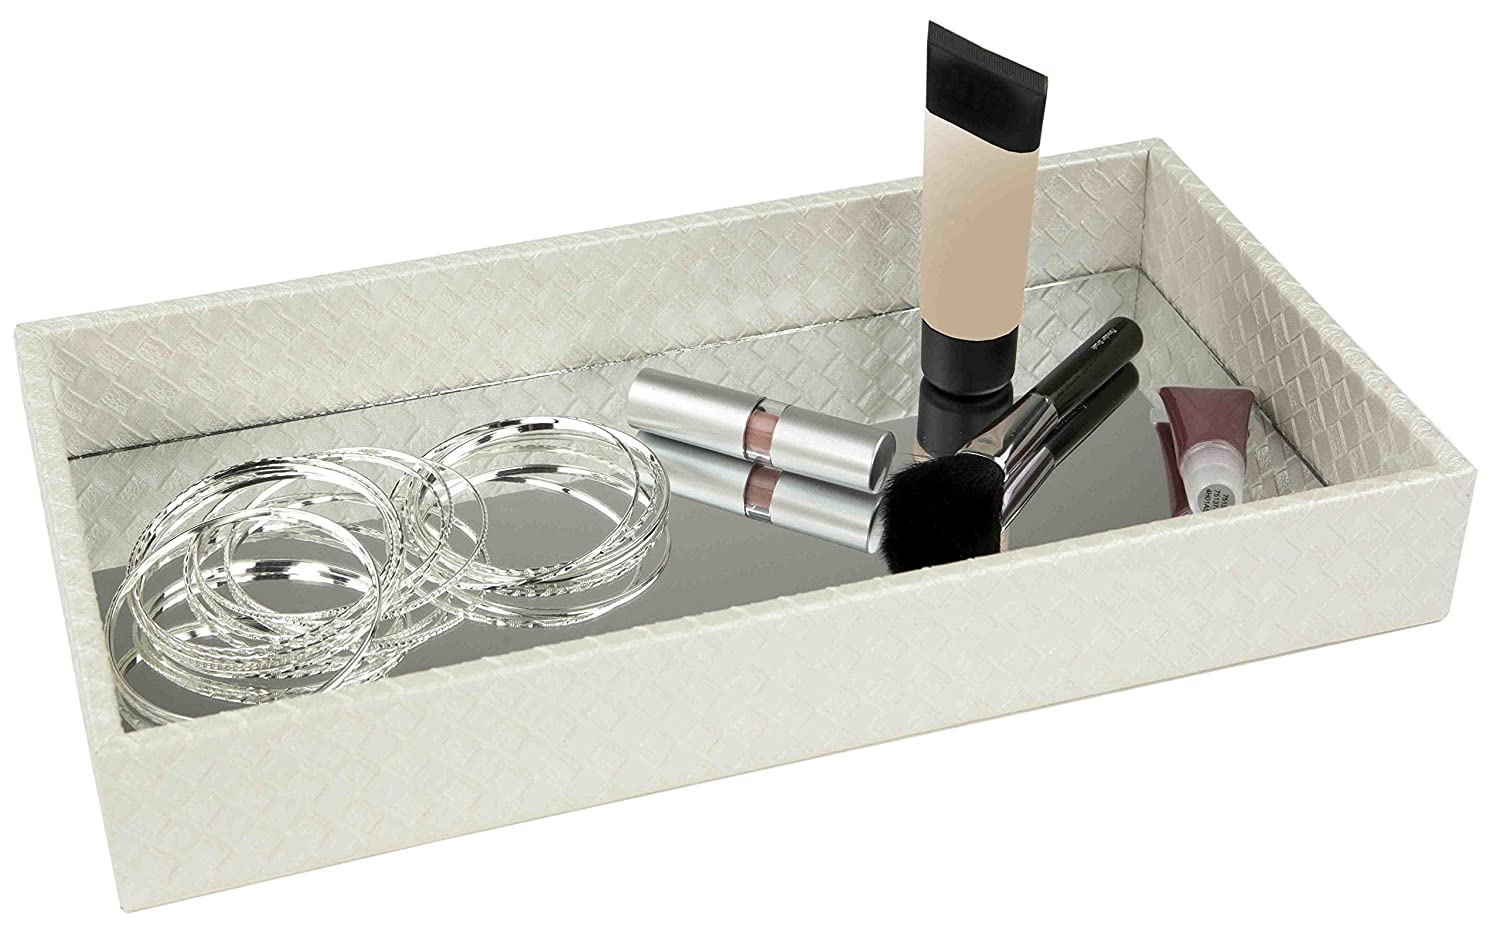 Home Basics Decorative Leather Bath Vanity Tray with Mirror, Black HDS Trading Corp ST49553